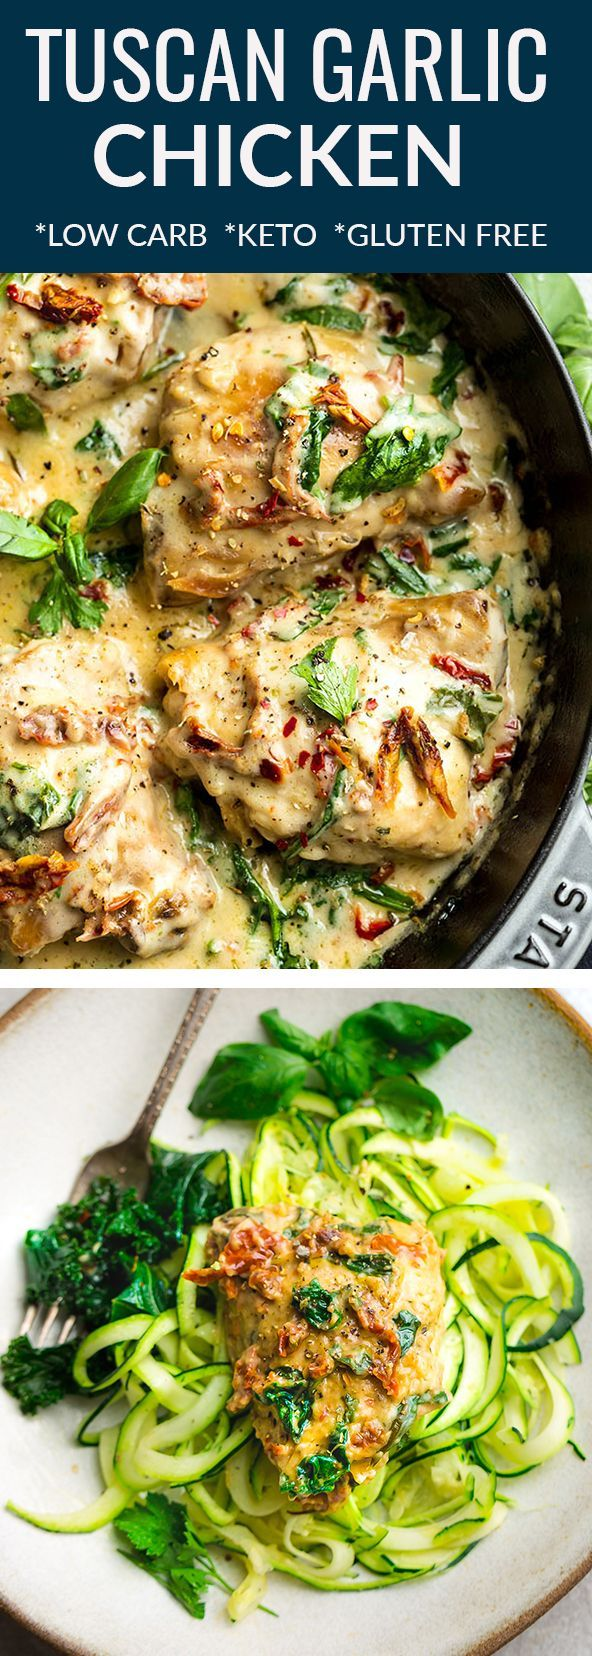 Keto Tuscan Garlic Chicken images